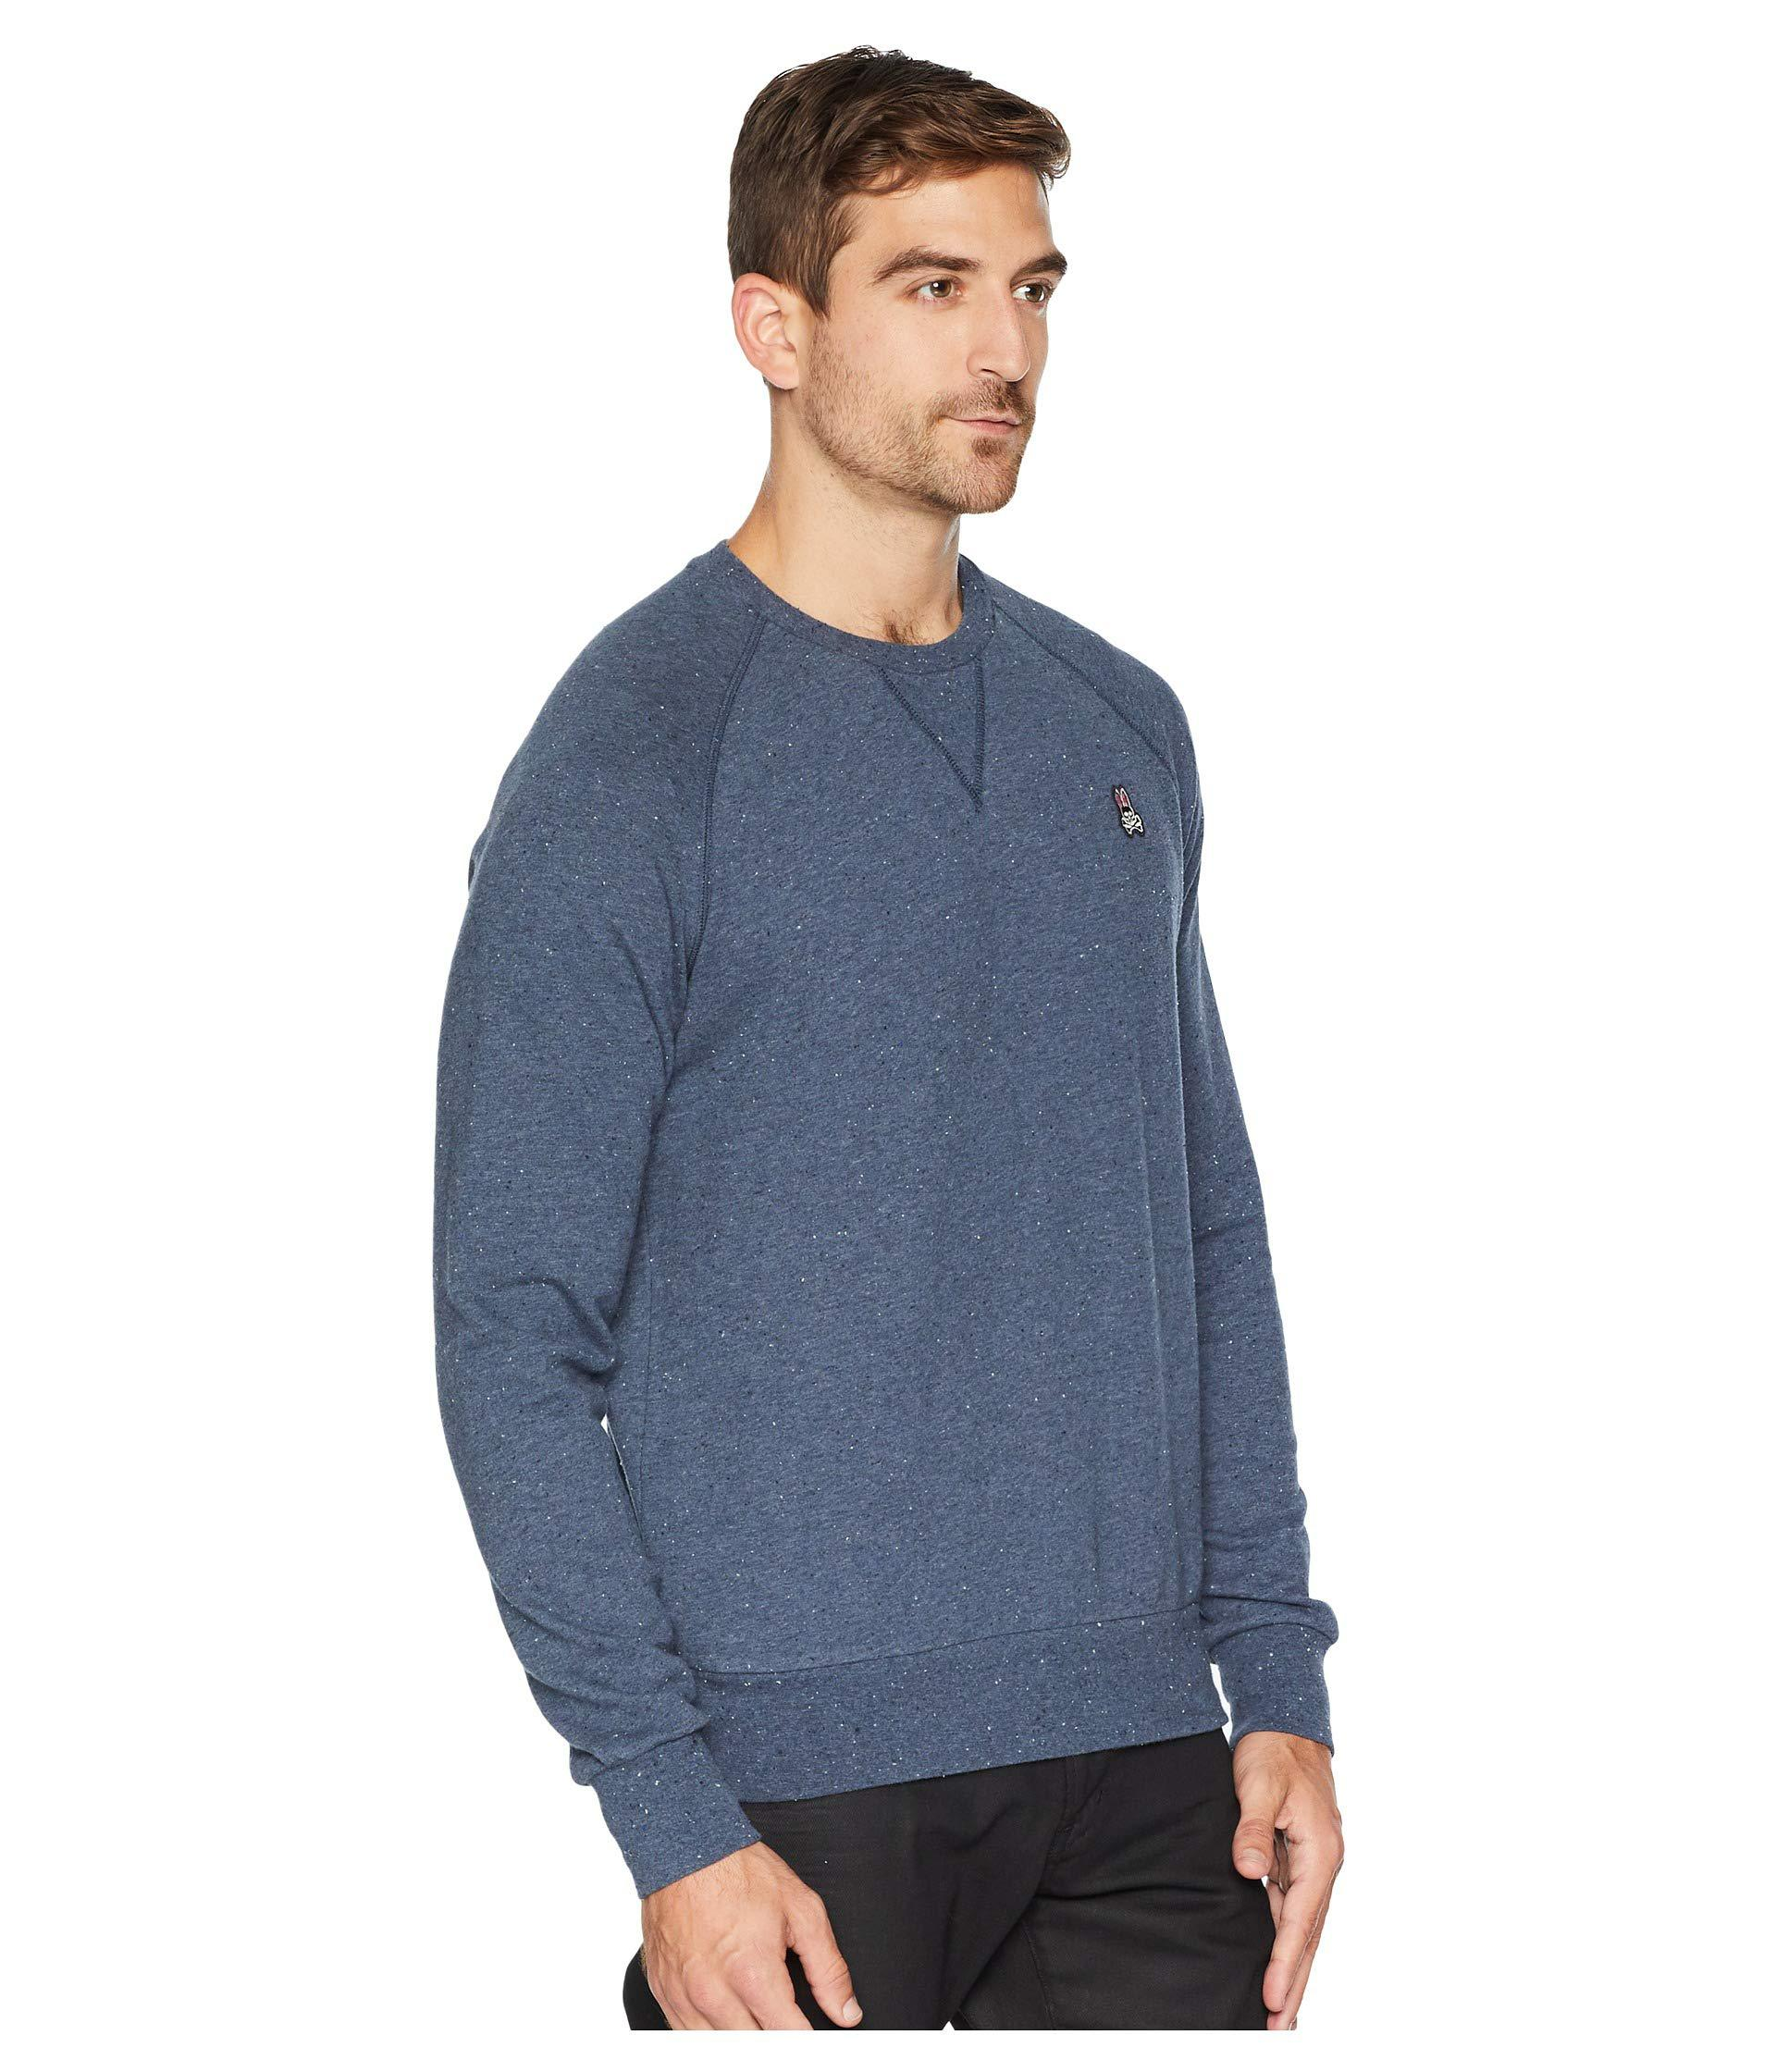 Psycho Bunny Men/'s Teal Blue Donegal Cotton//Cashmere 1//4 Zip Pullover Sweater